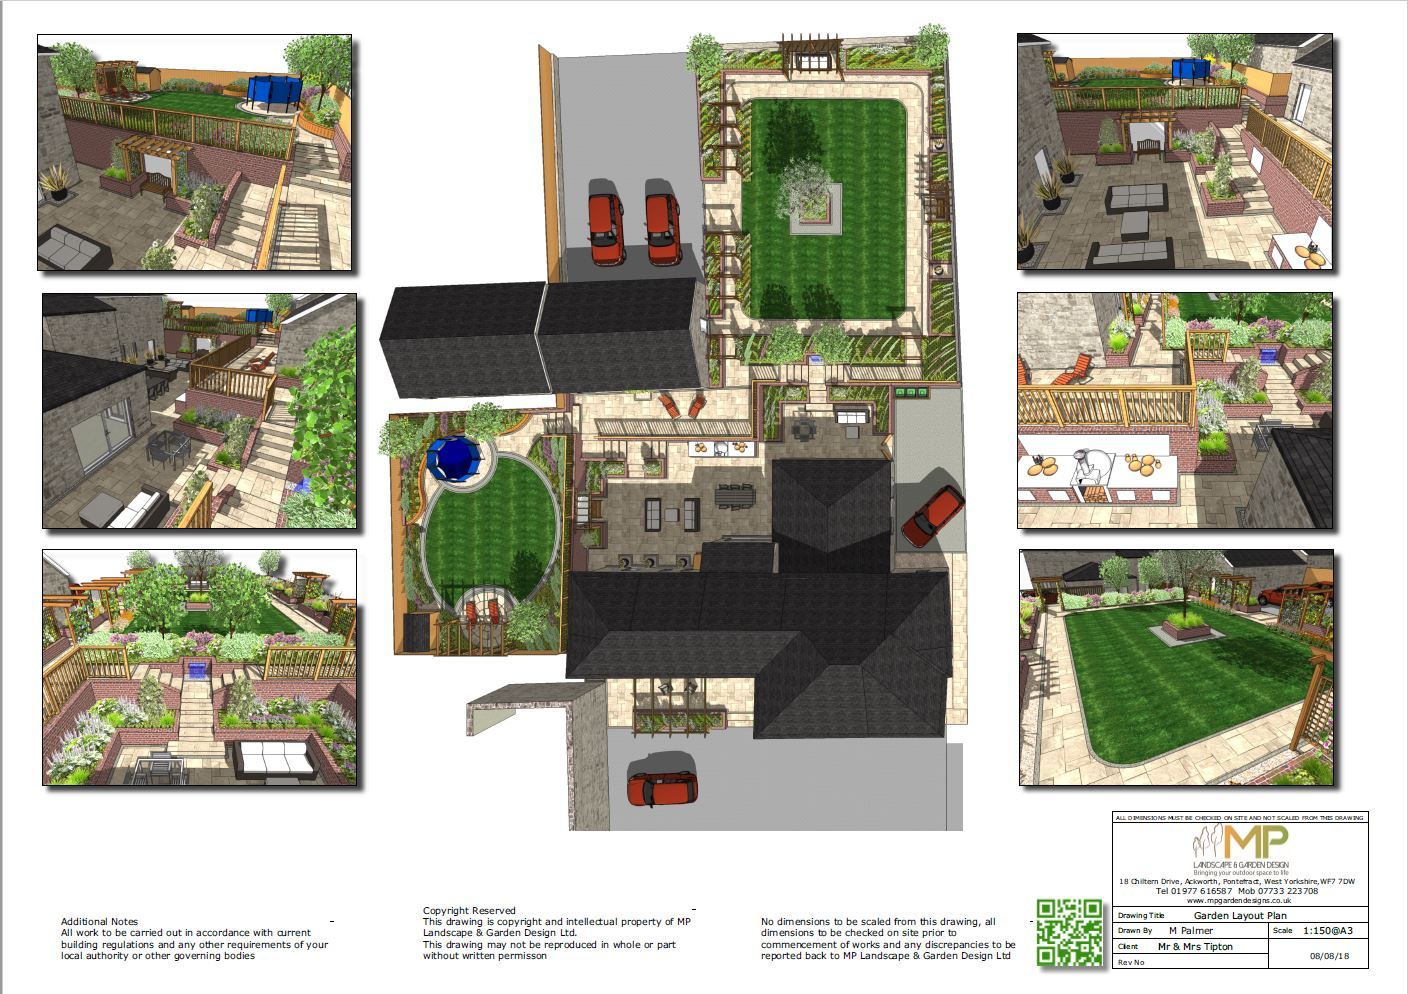 1, 3D views of a landscape design for a barn conversion in Castleford, West Yorkshire.